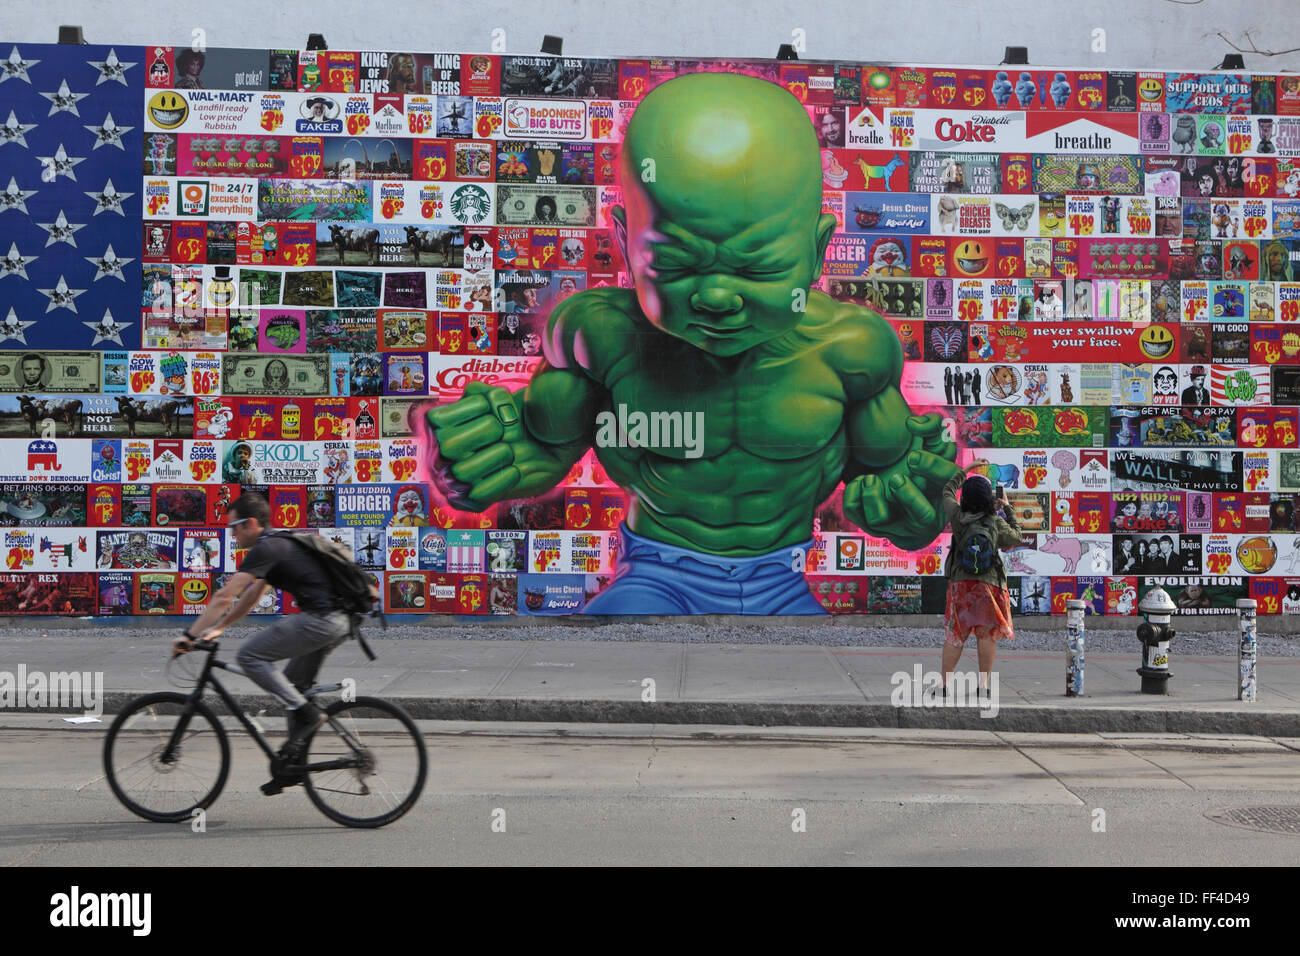 A man cycles to work past a Ron English art collage on the Bowery Mural Wall on Houston Street in New York - Stock Image